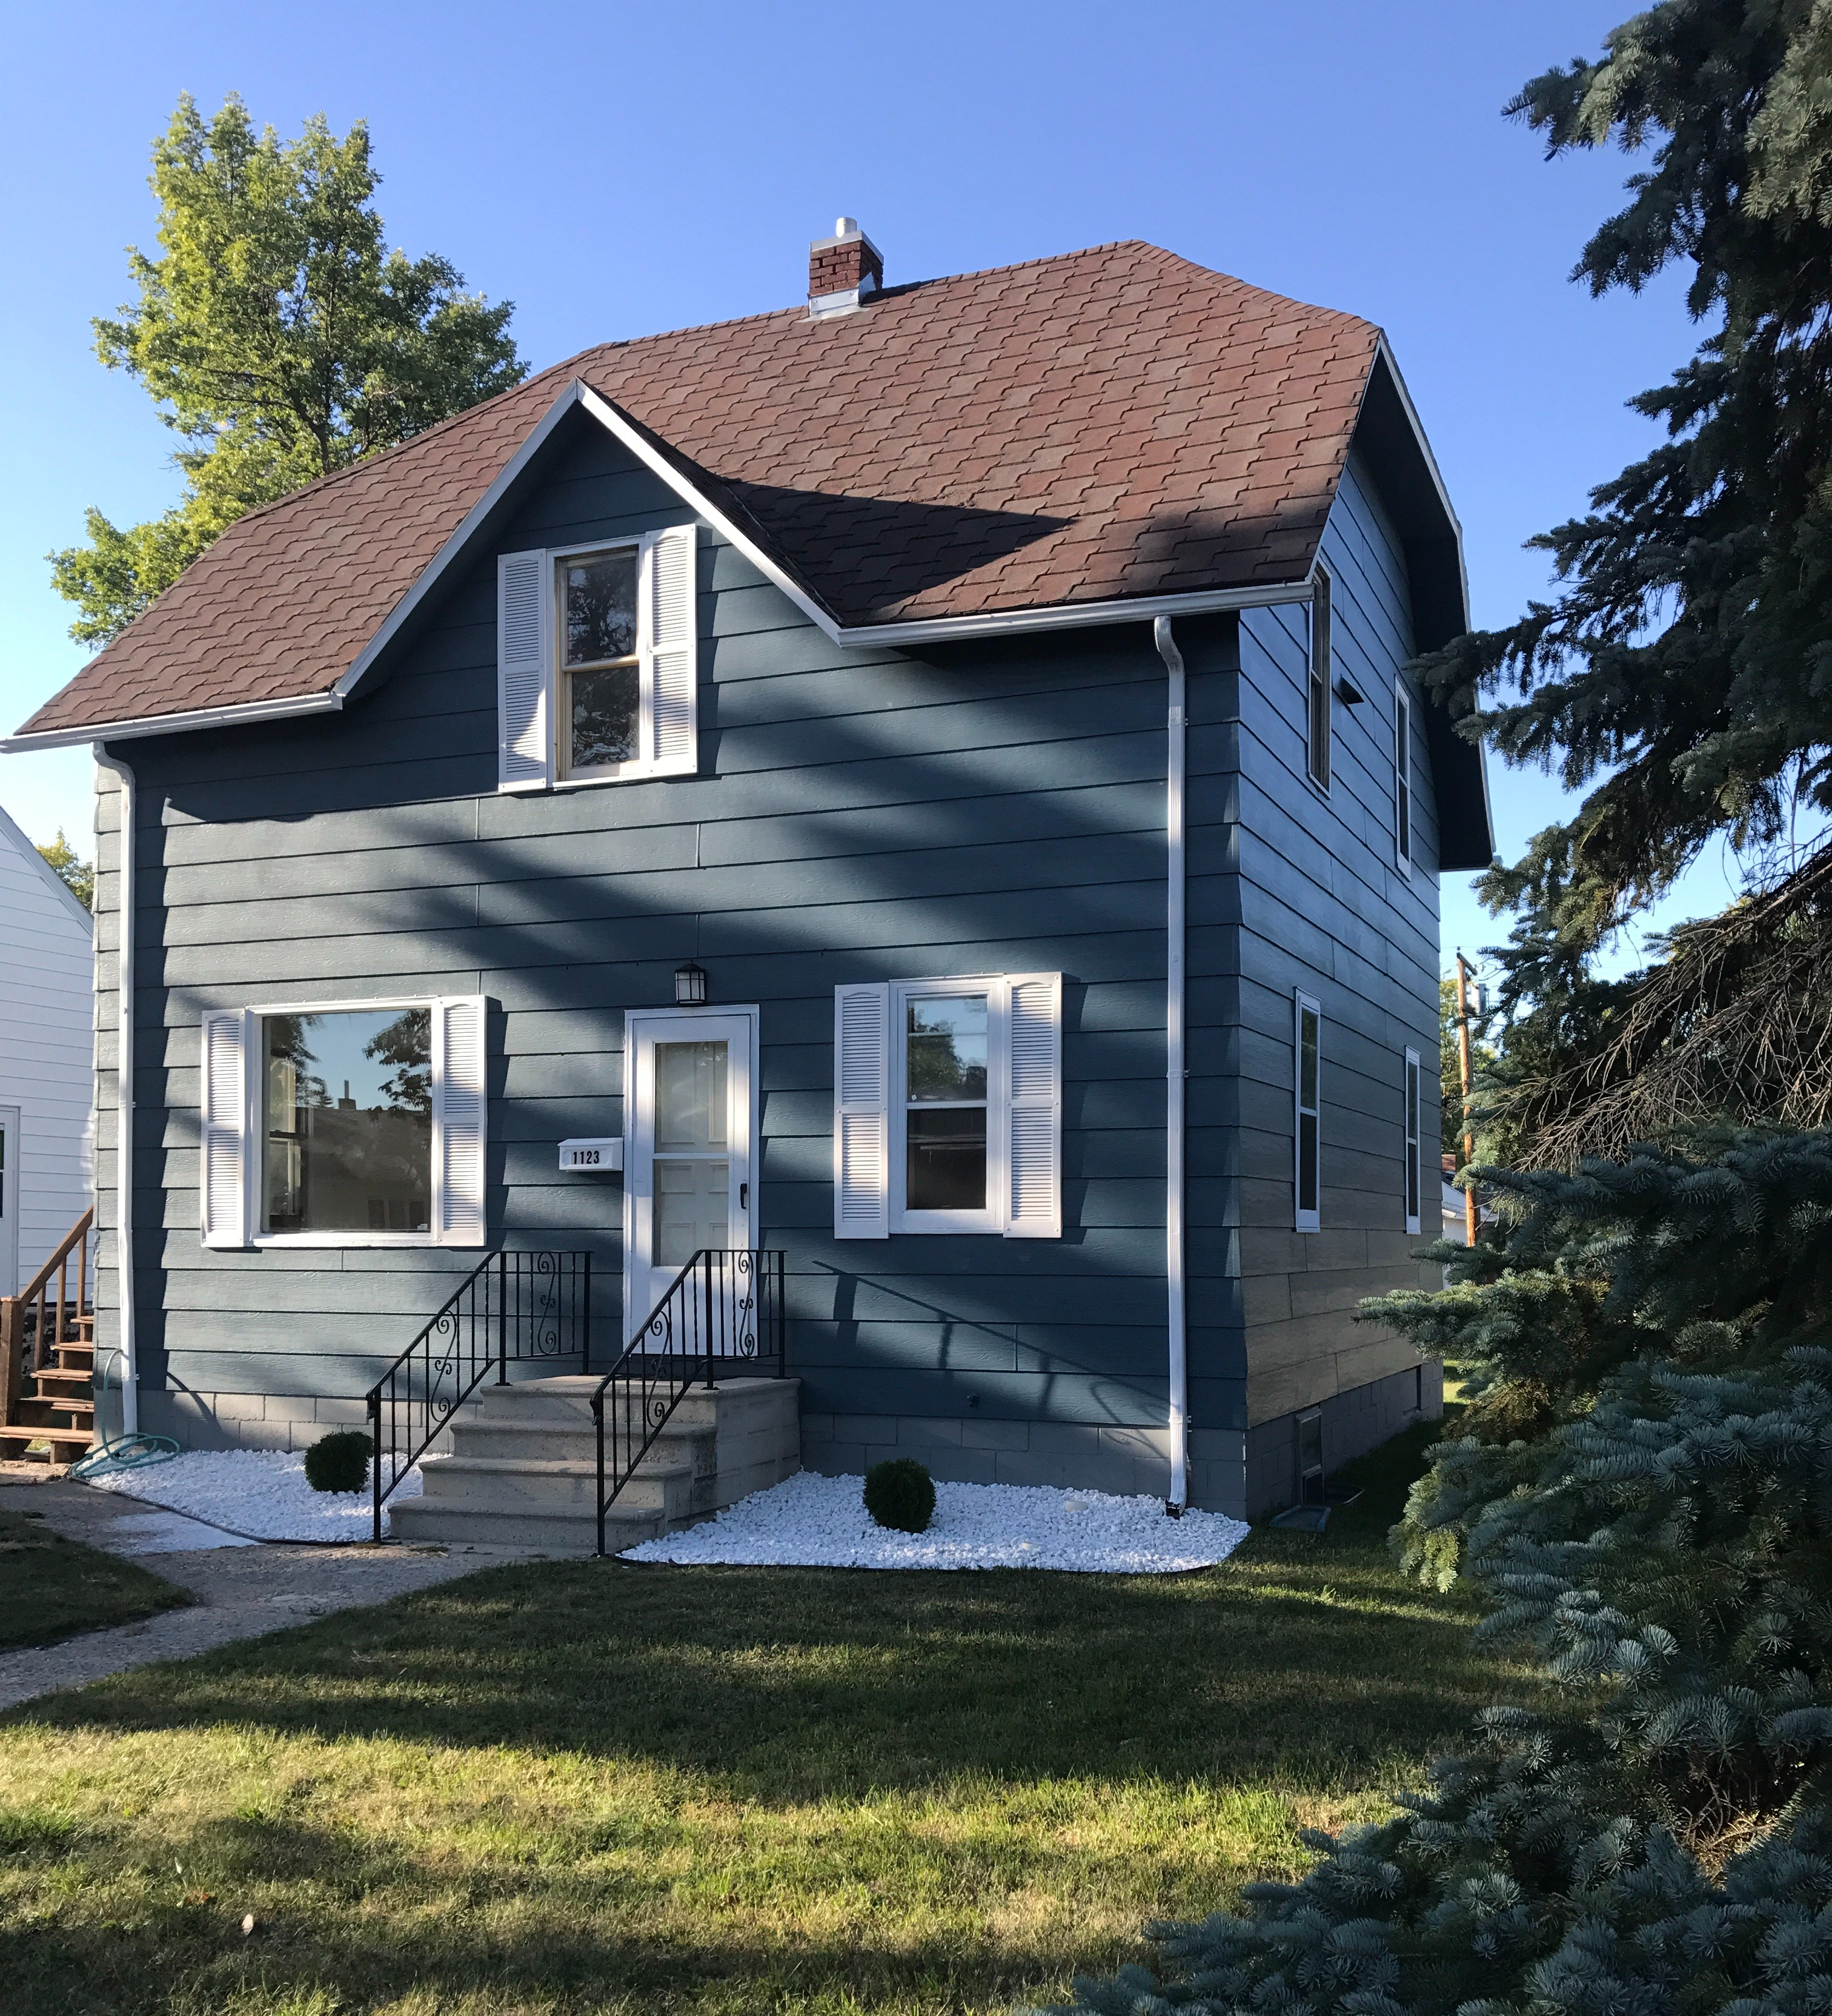 House FOR SALE! 5 Bed, 3 Bath, Large Yard $119,000